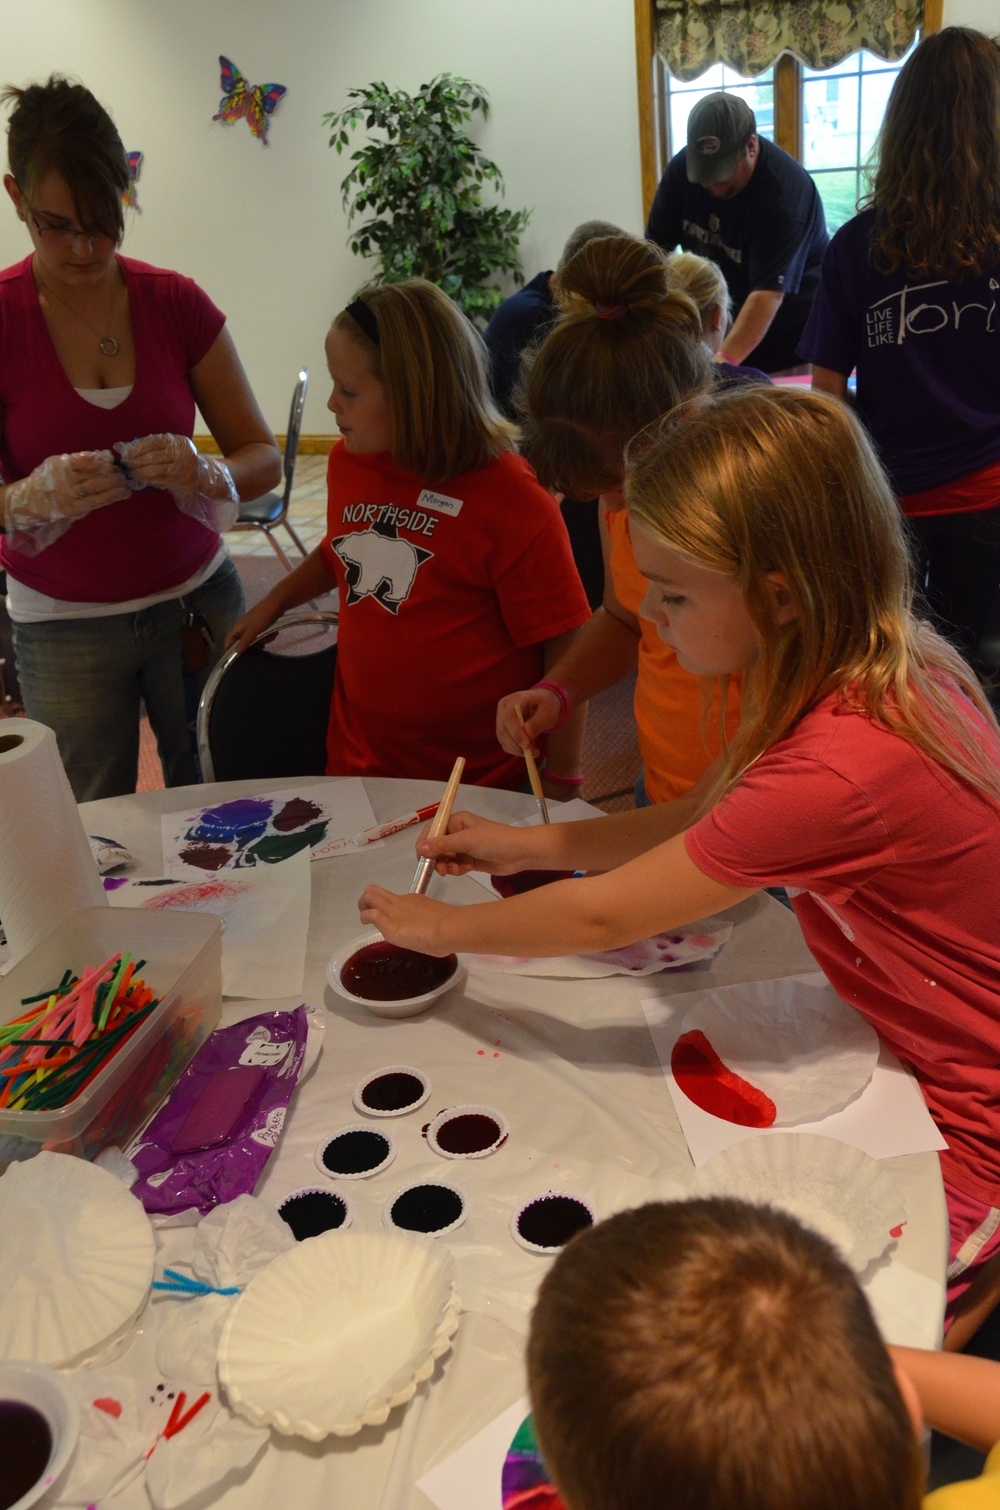 KIds ARt Church 9 12 2011   95265.jpg